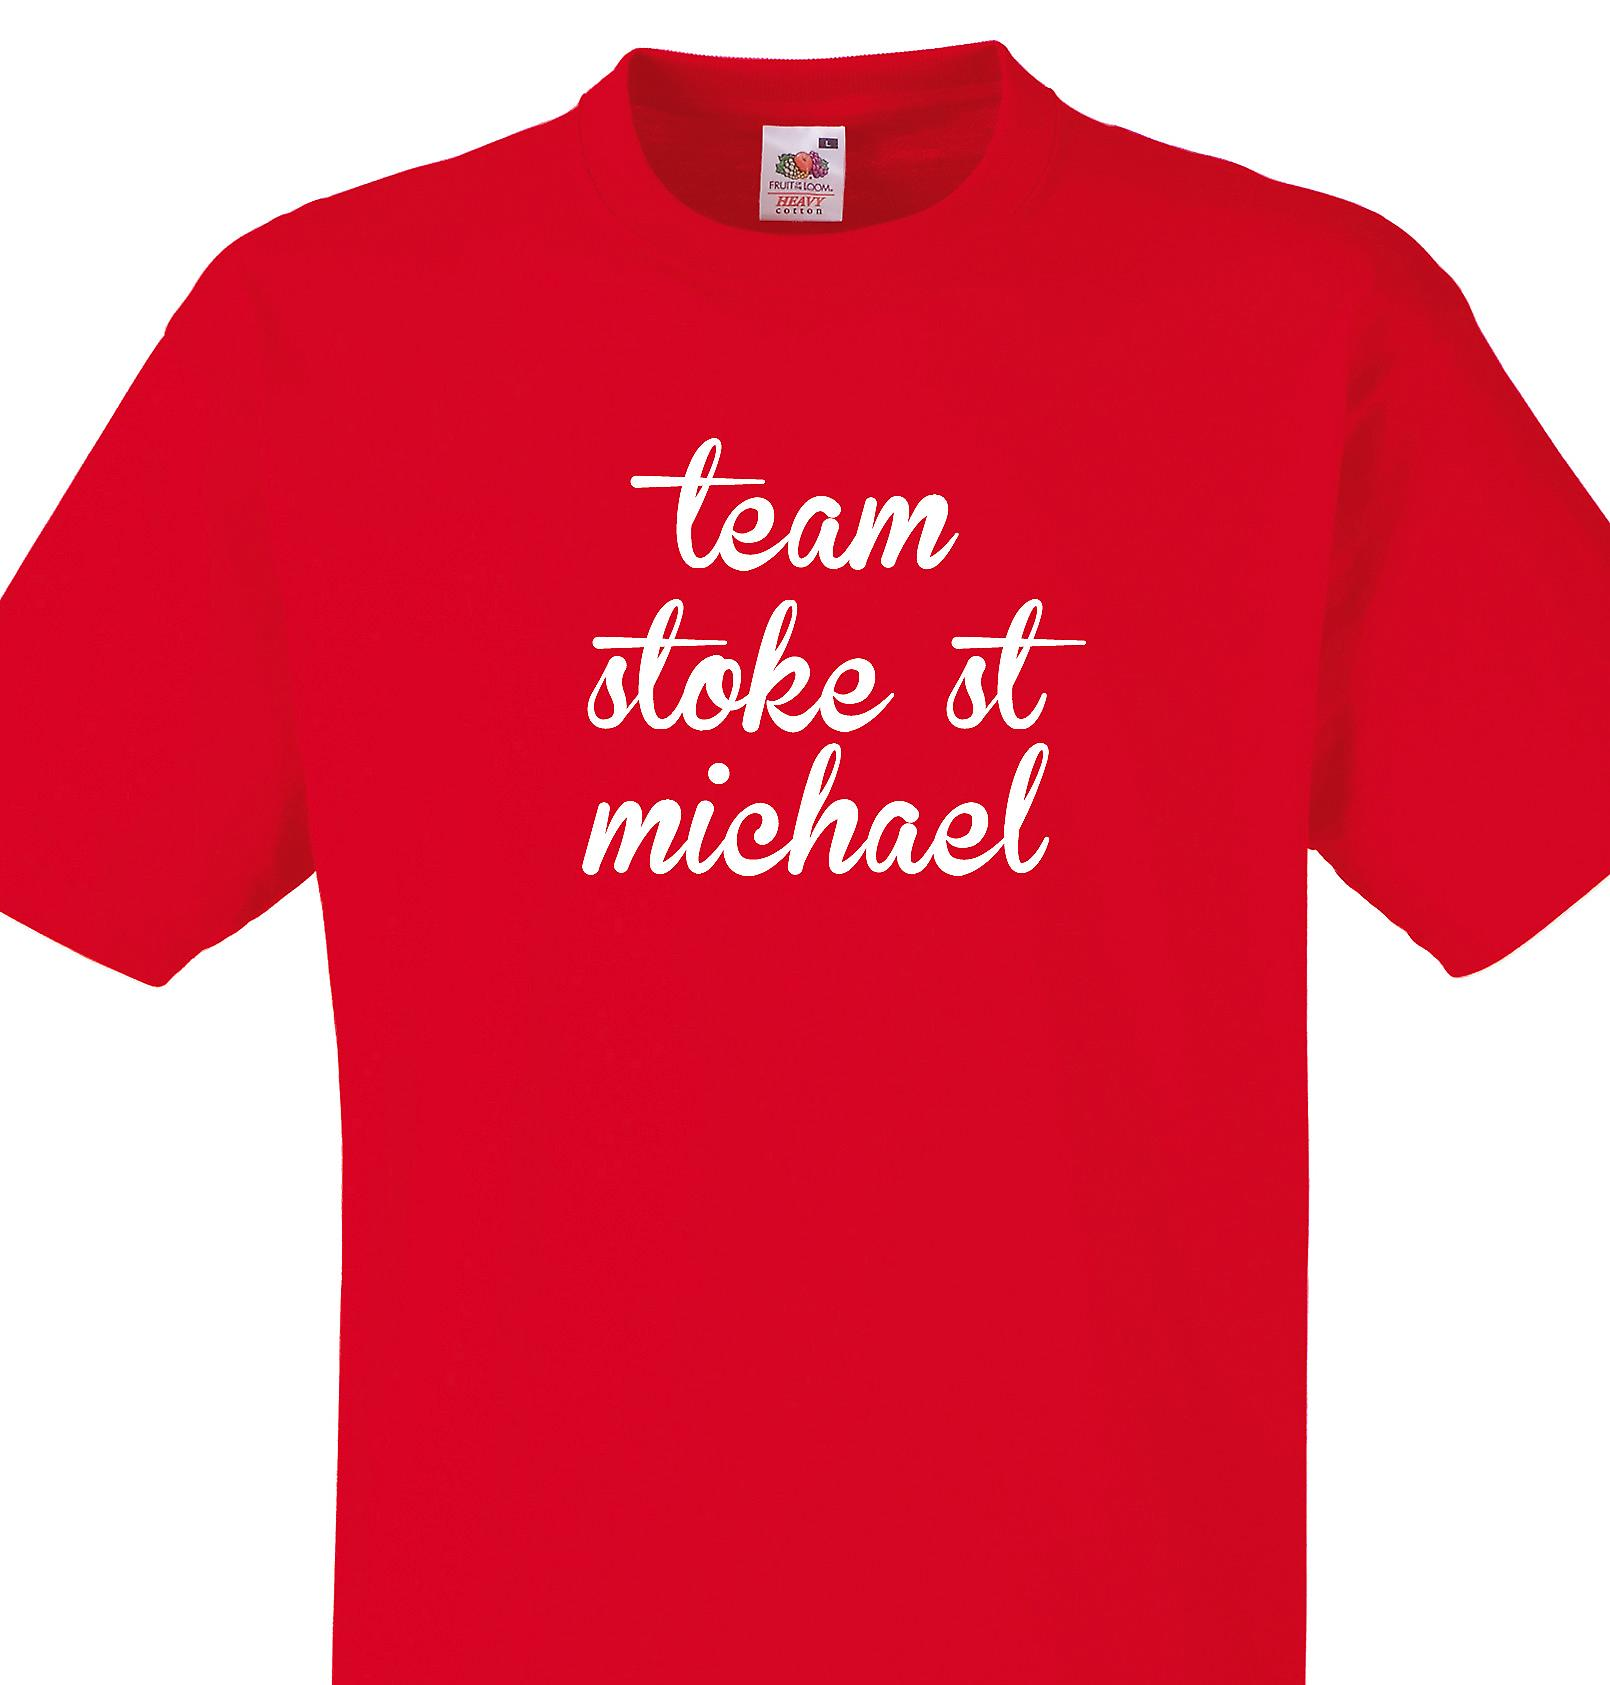 Team Stoke st michael Red T shirt